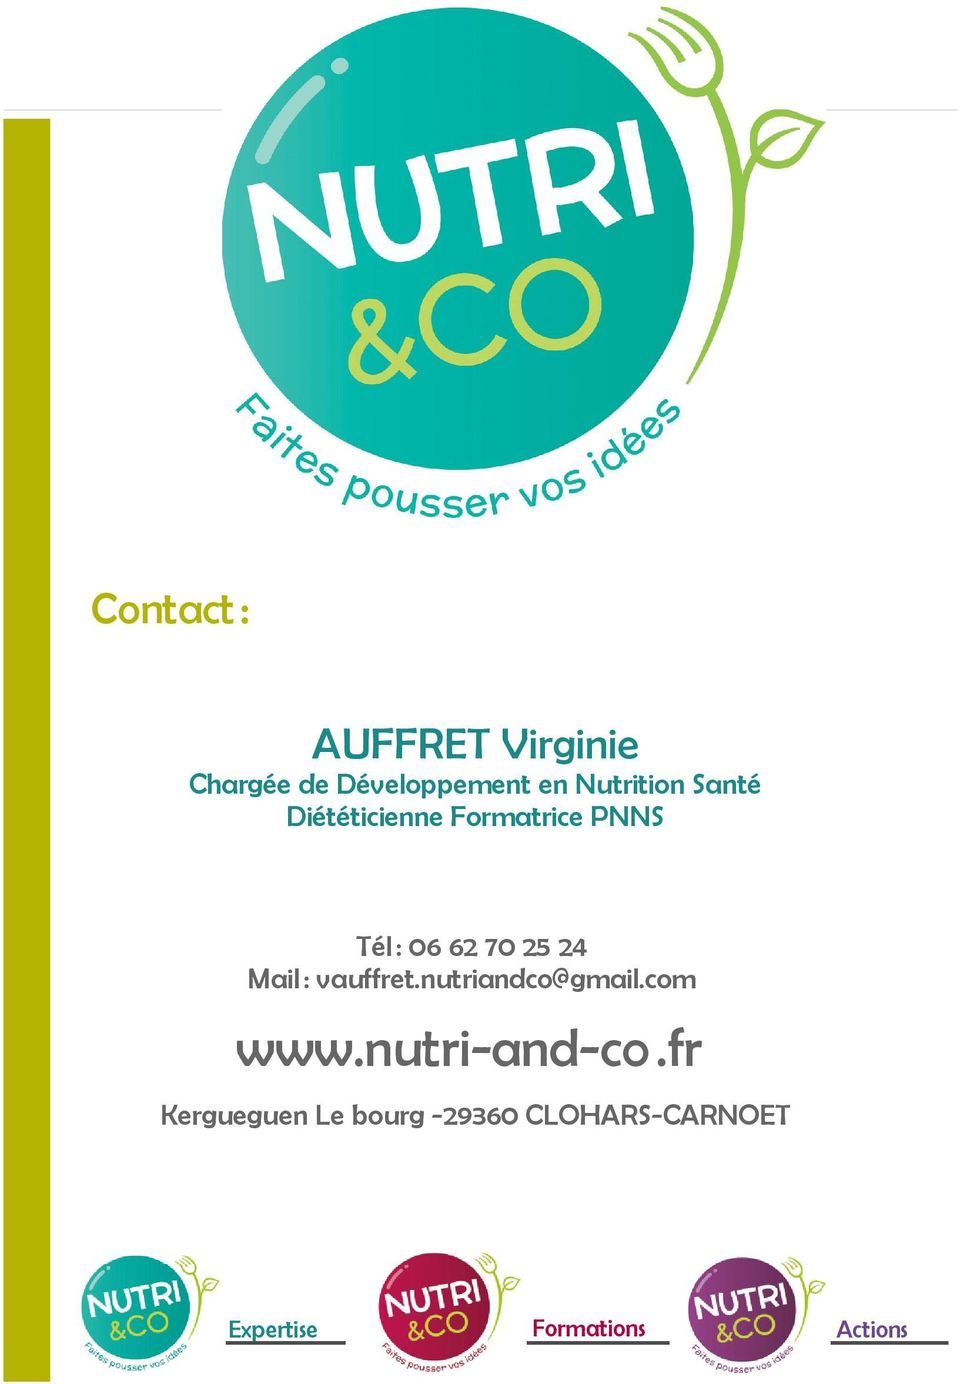 25 24 Mail : vauffret.nutriandco@gmail.com www.nutri-and-co.